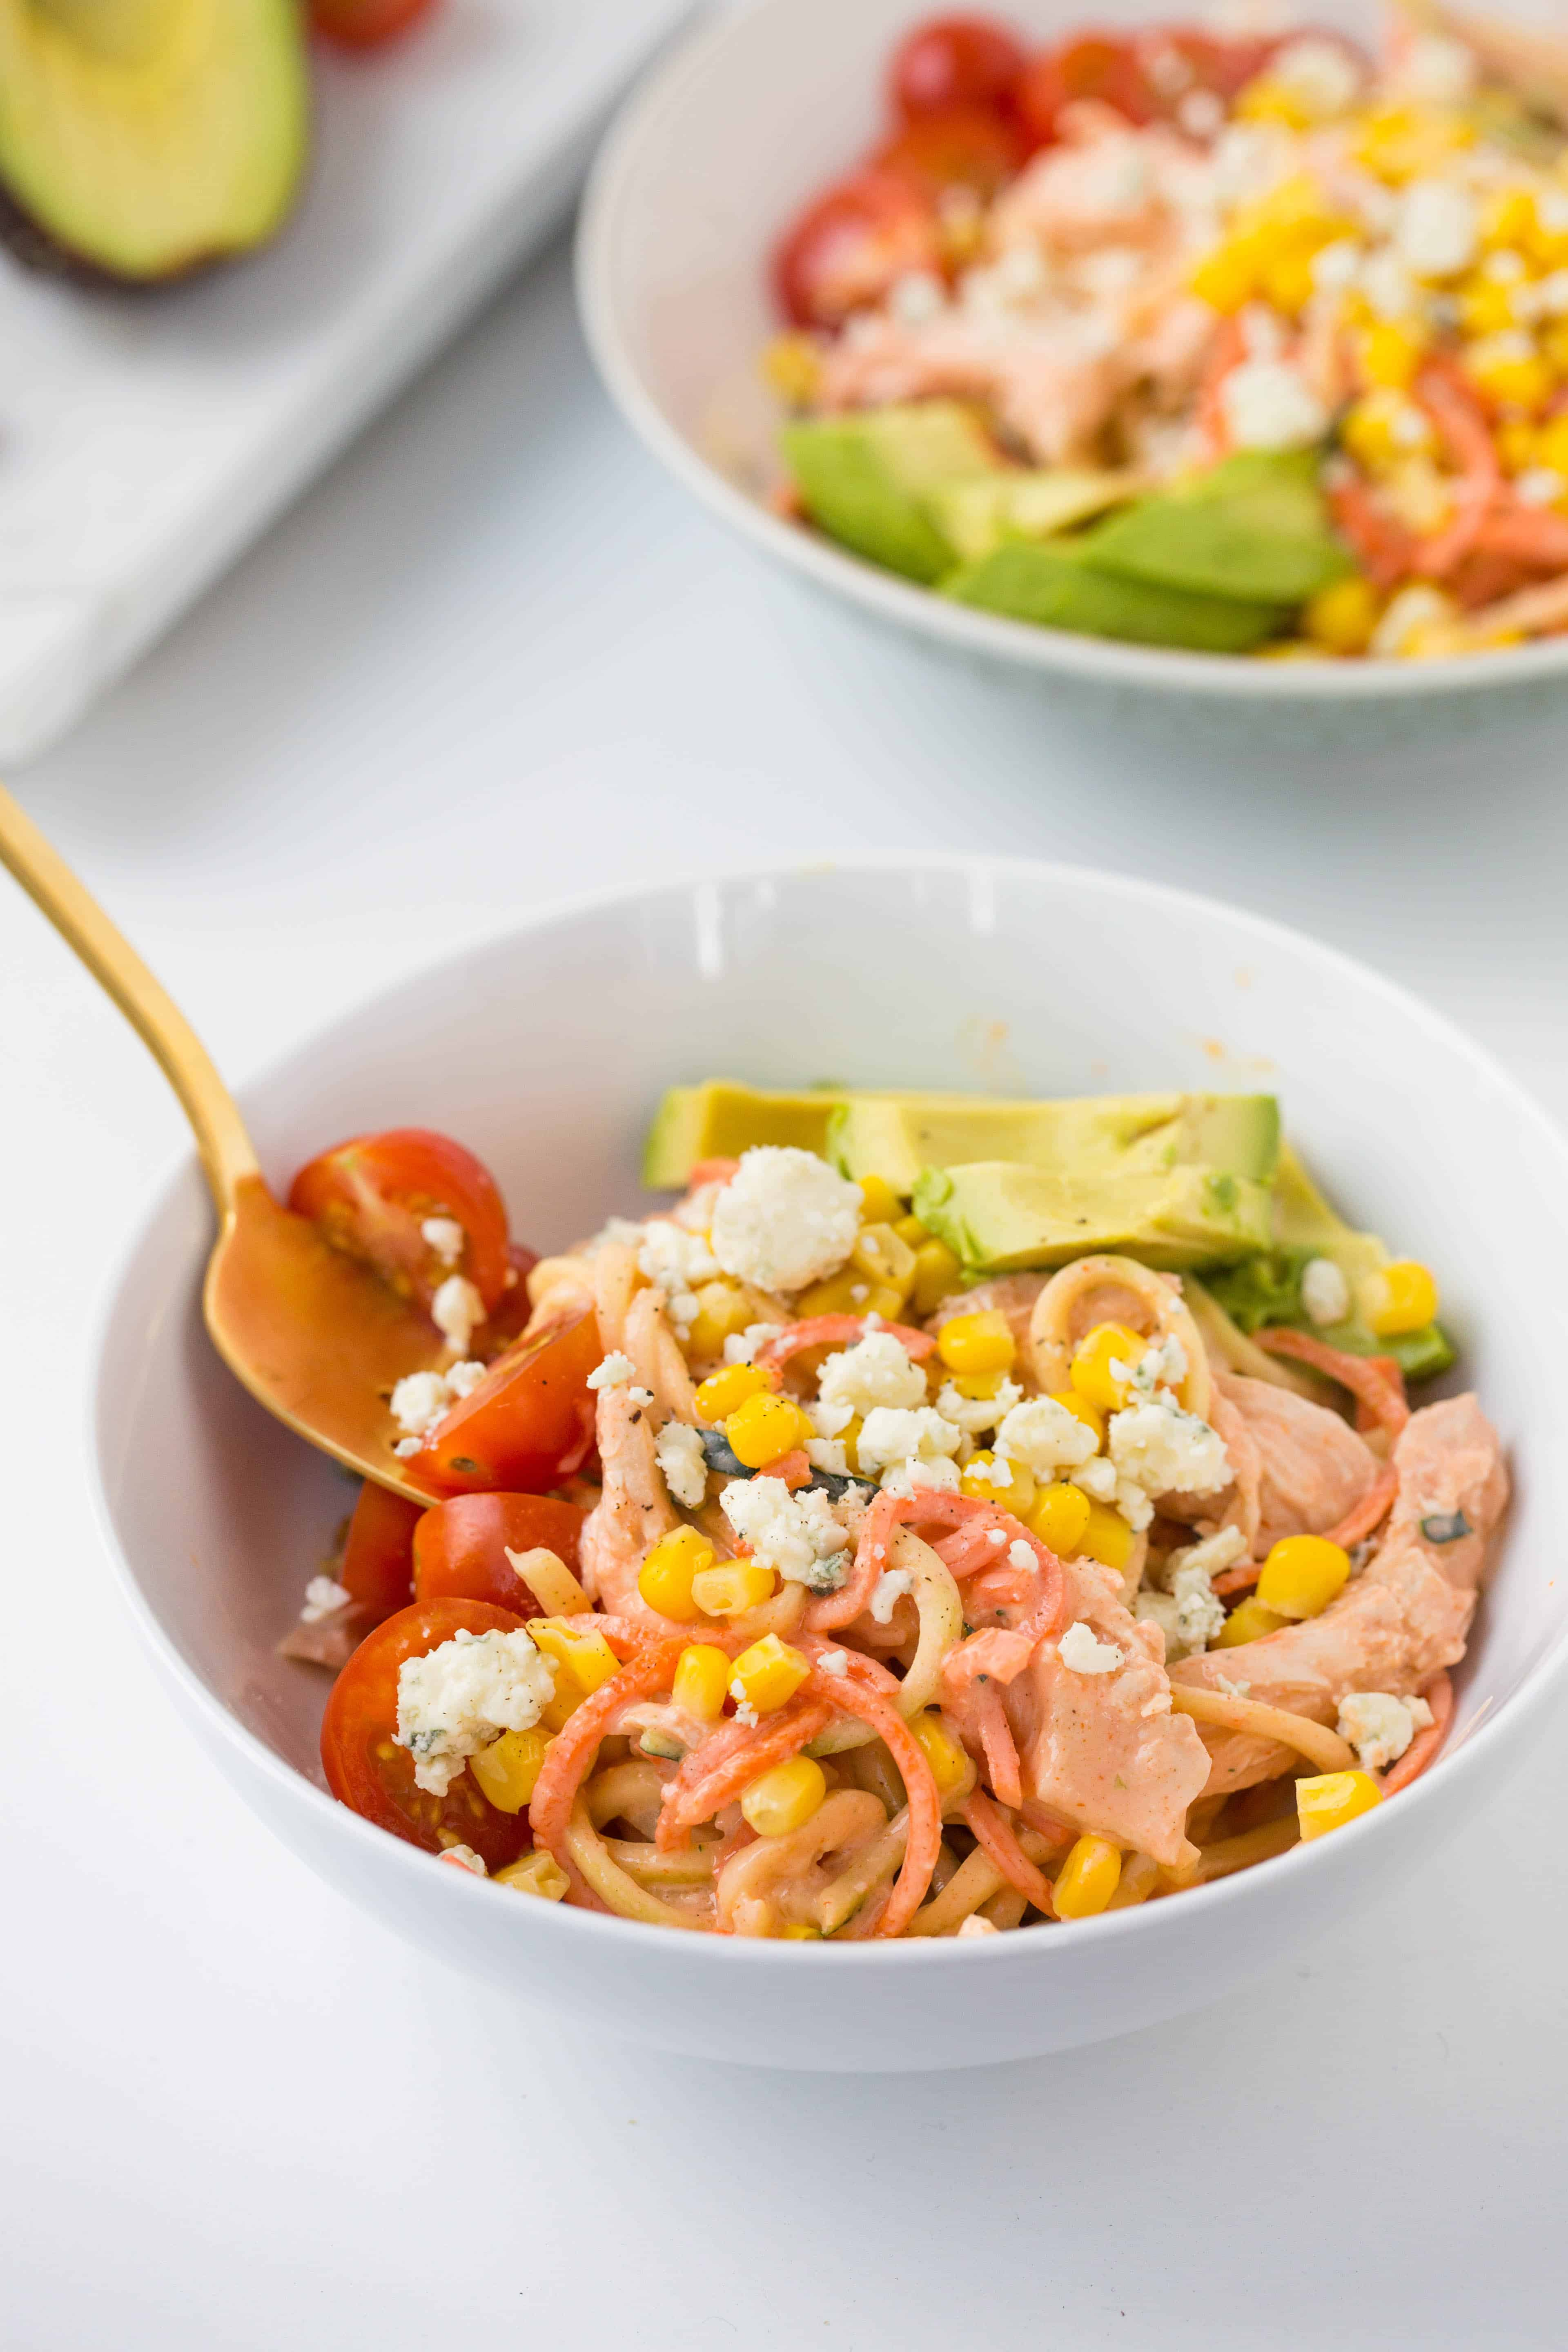 Buffalo Chicken Bowls with Zucchini and Carrot Noodles